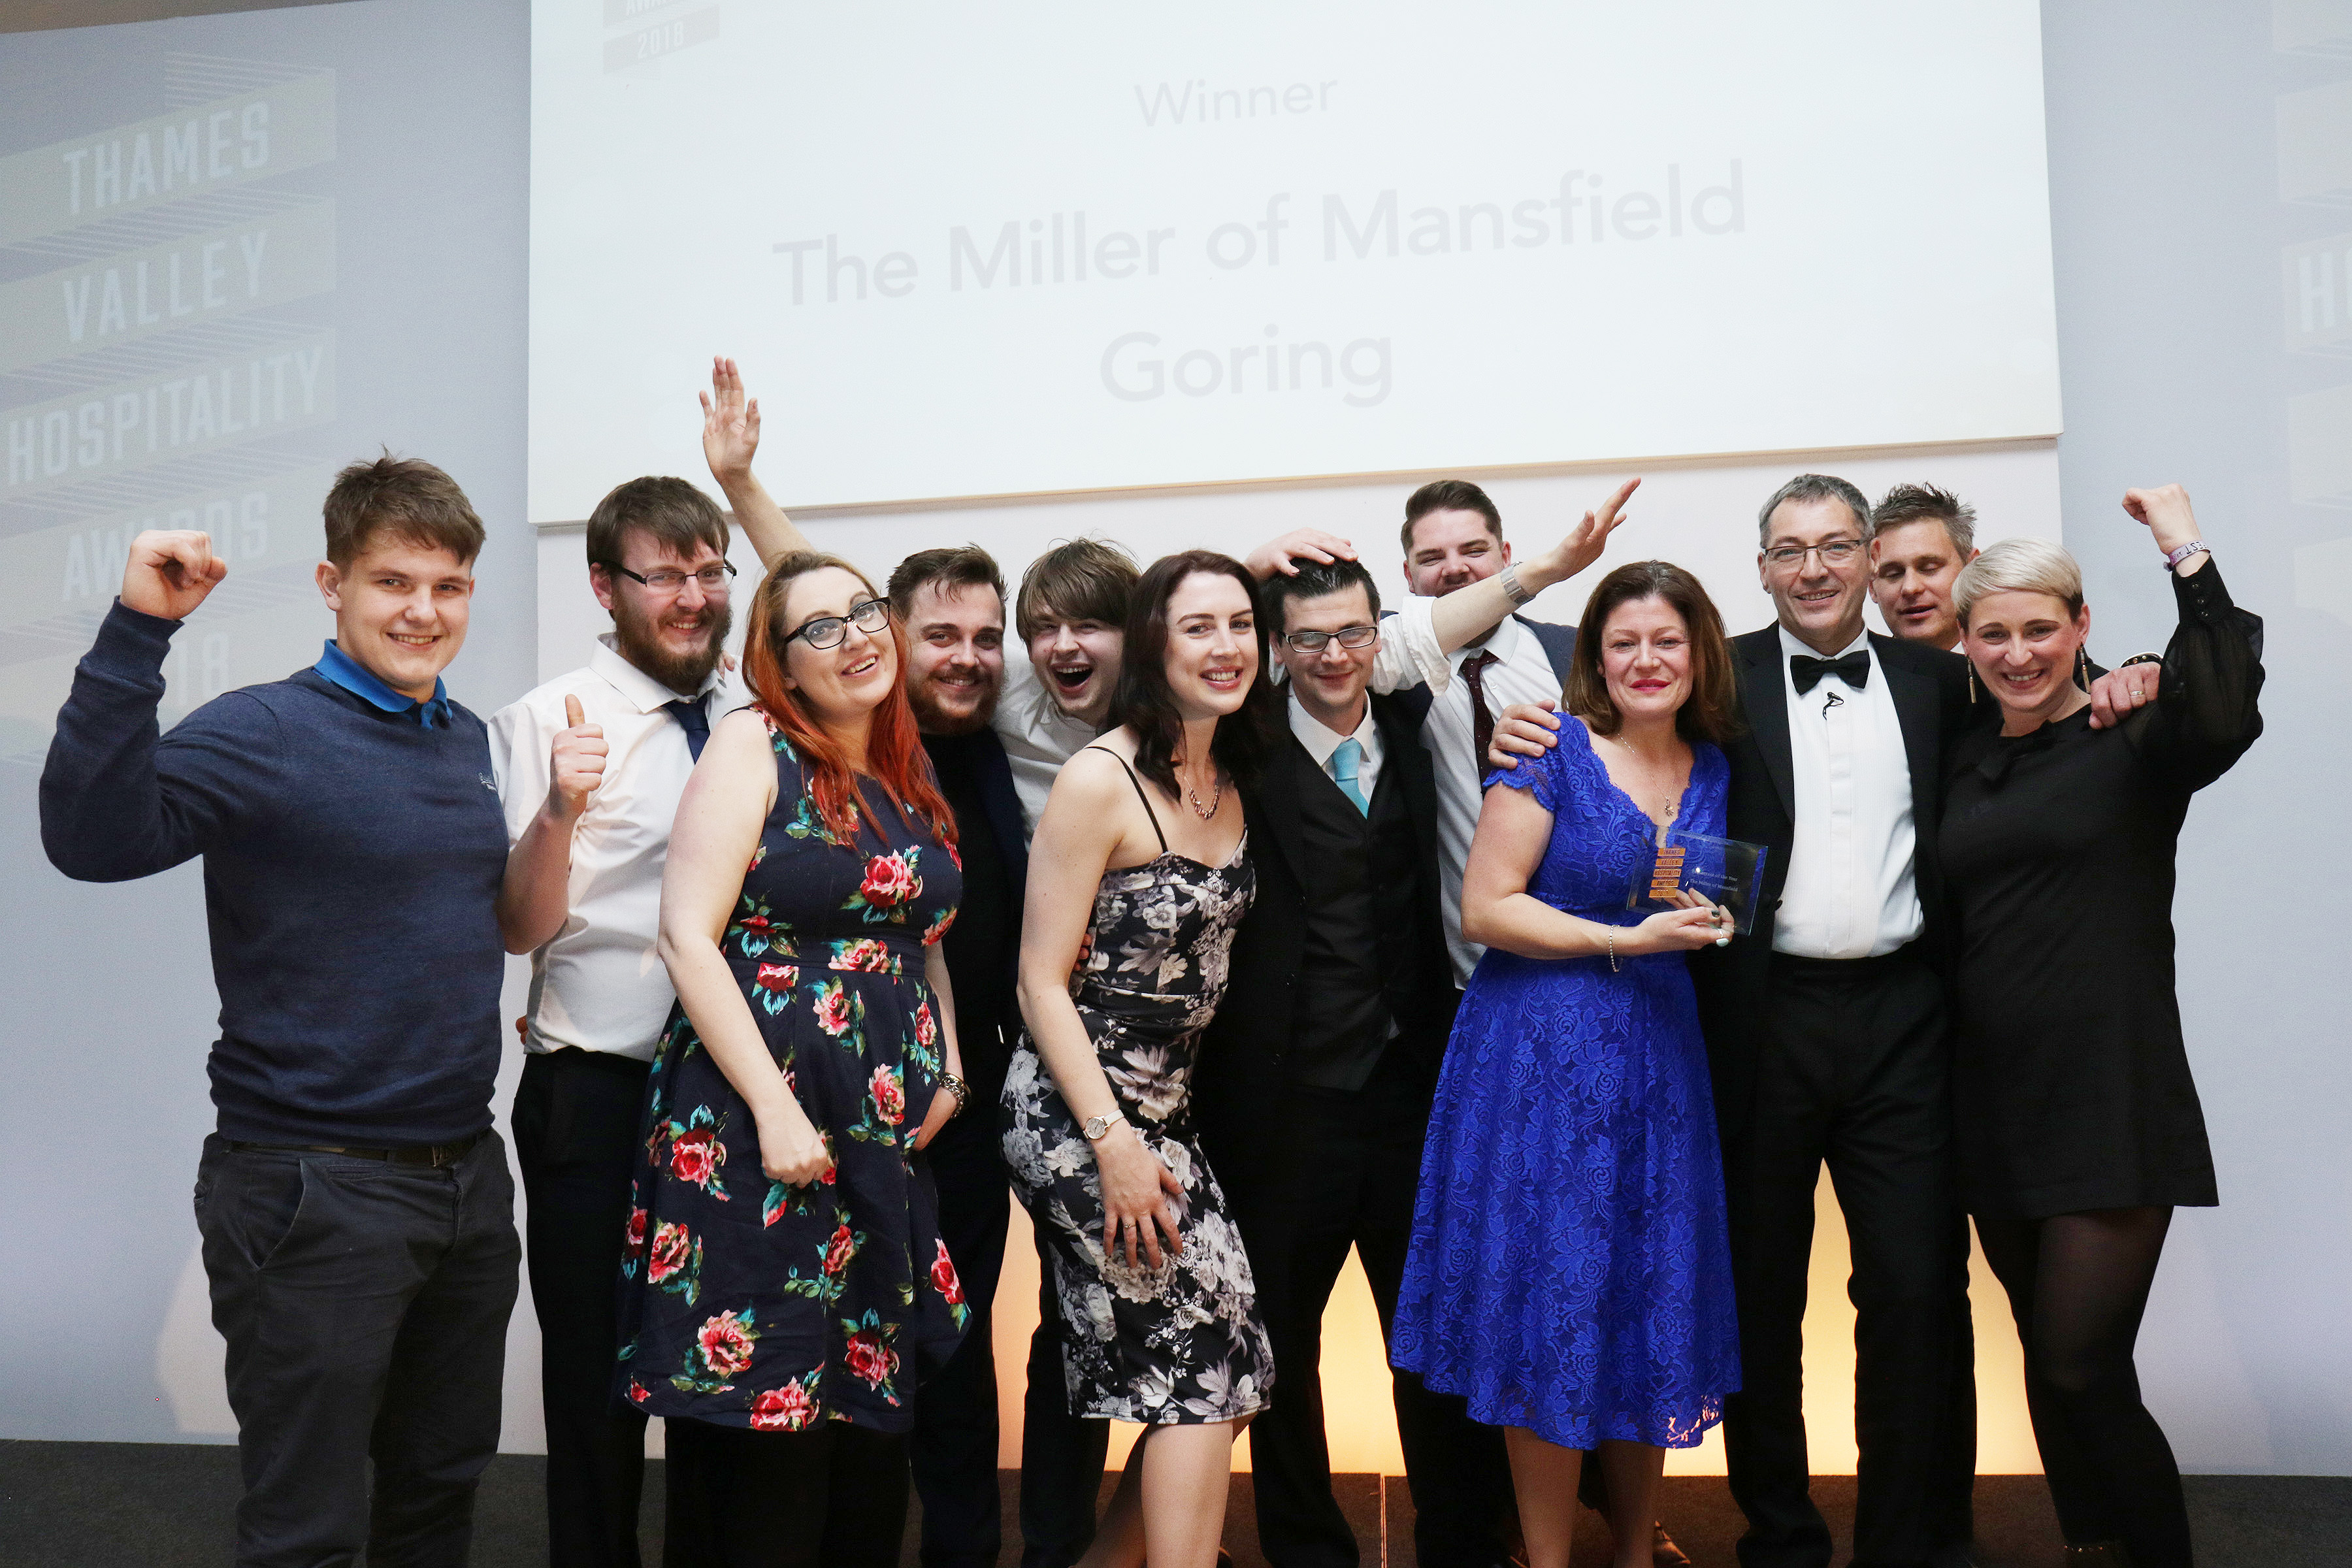 The Miller of Mansfield Goring wins Restaurant of the Year